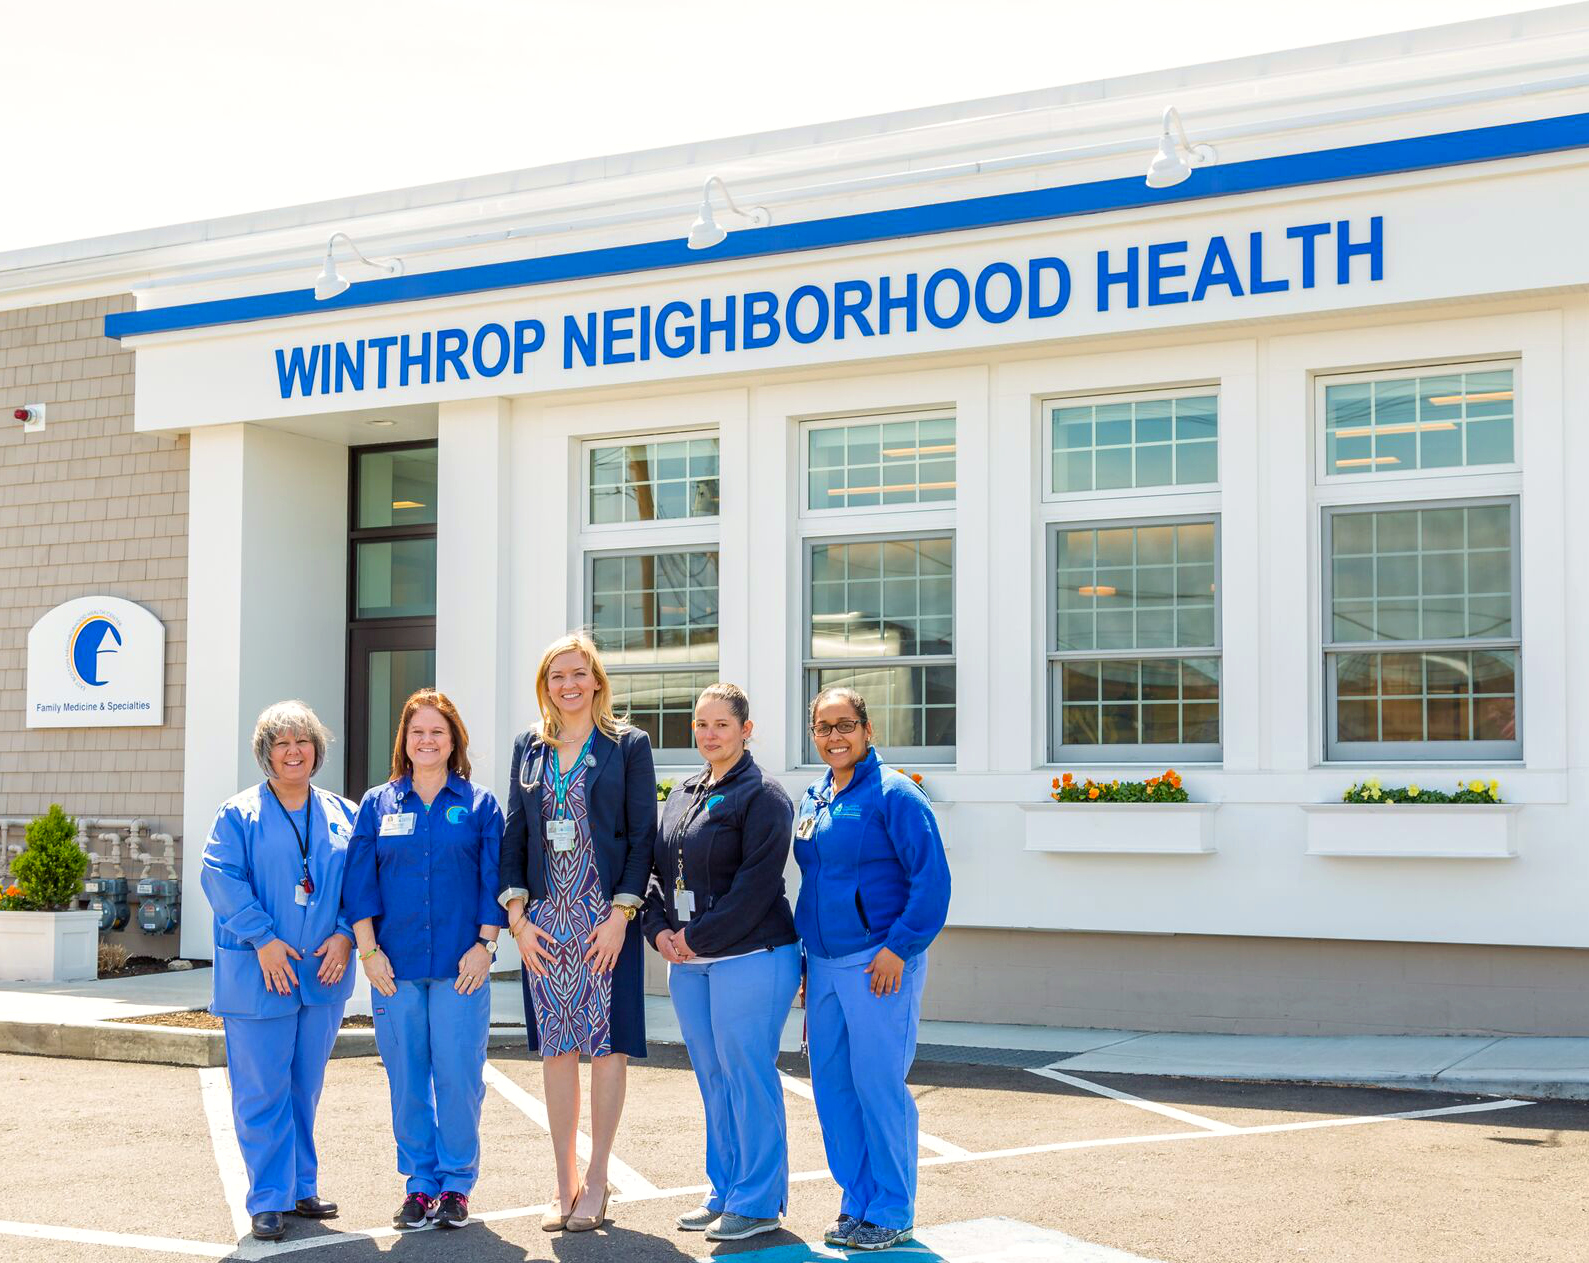 Winthrop Neighborhood Health Ebnhc